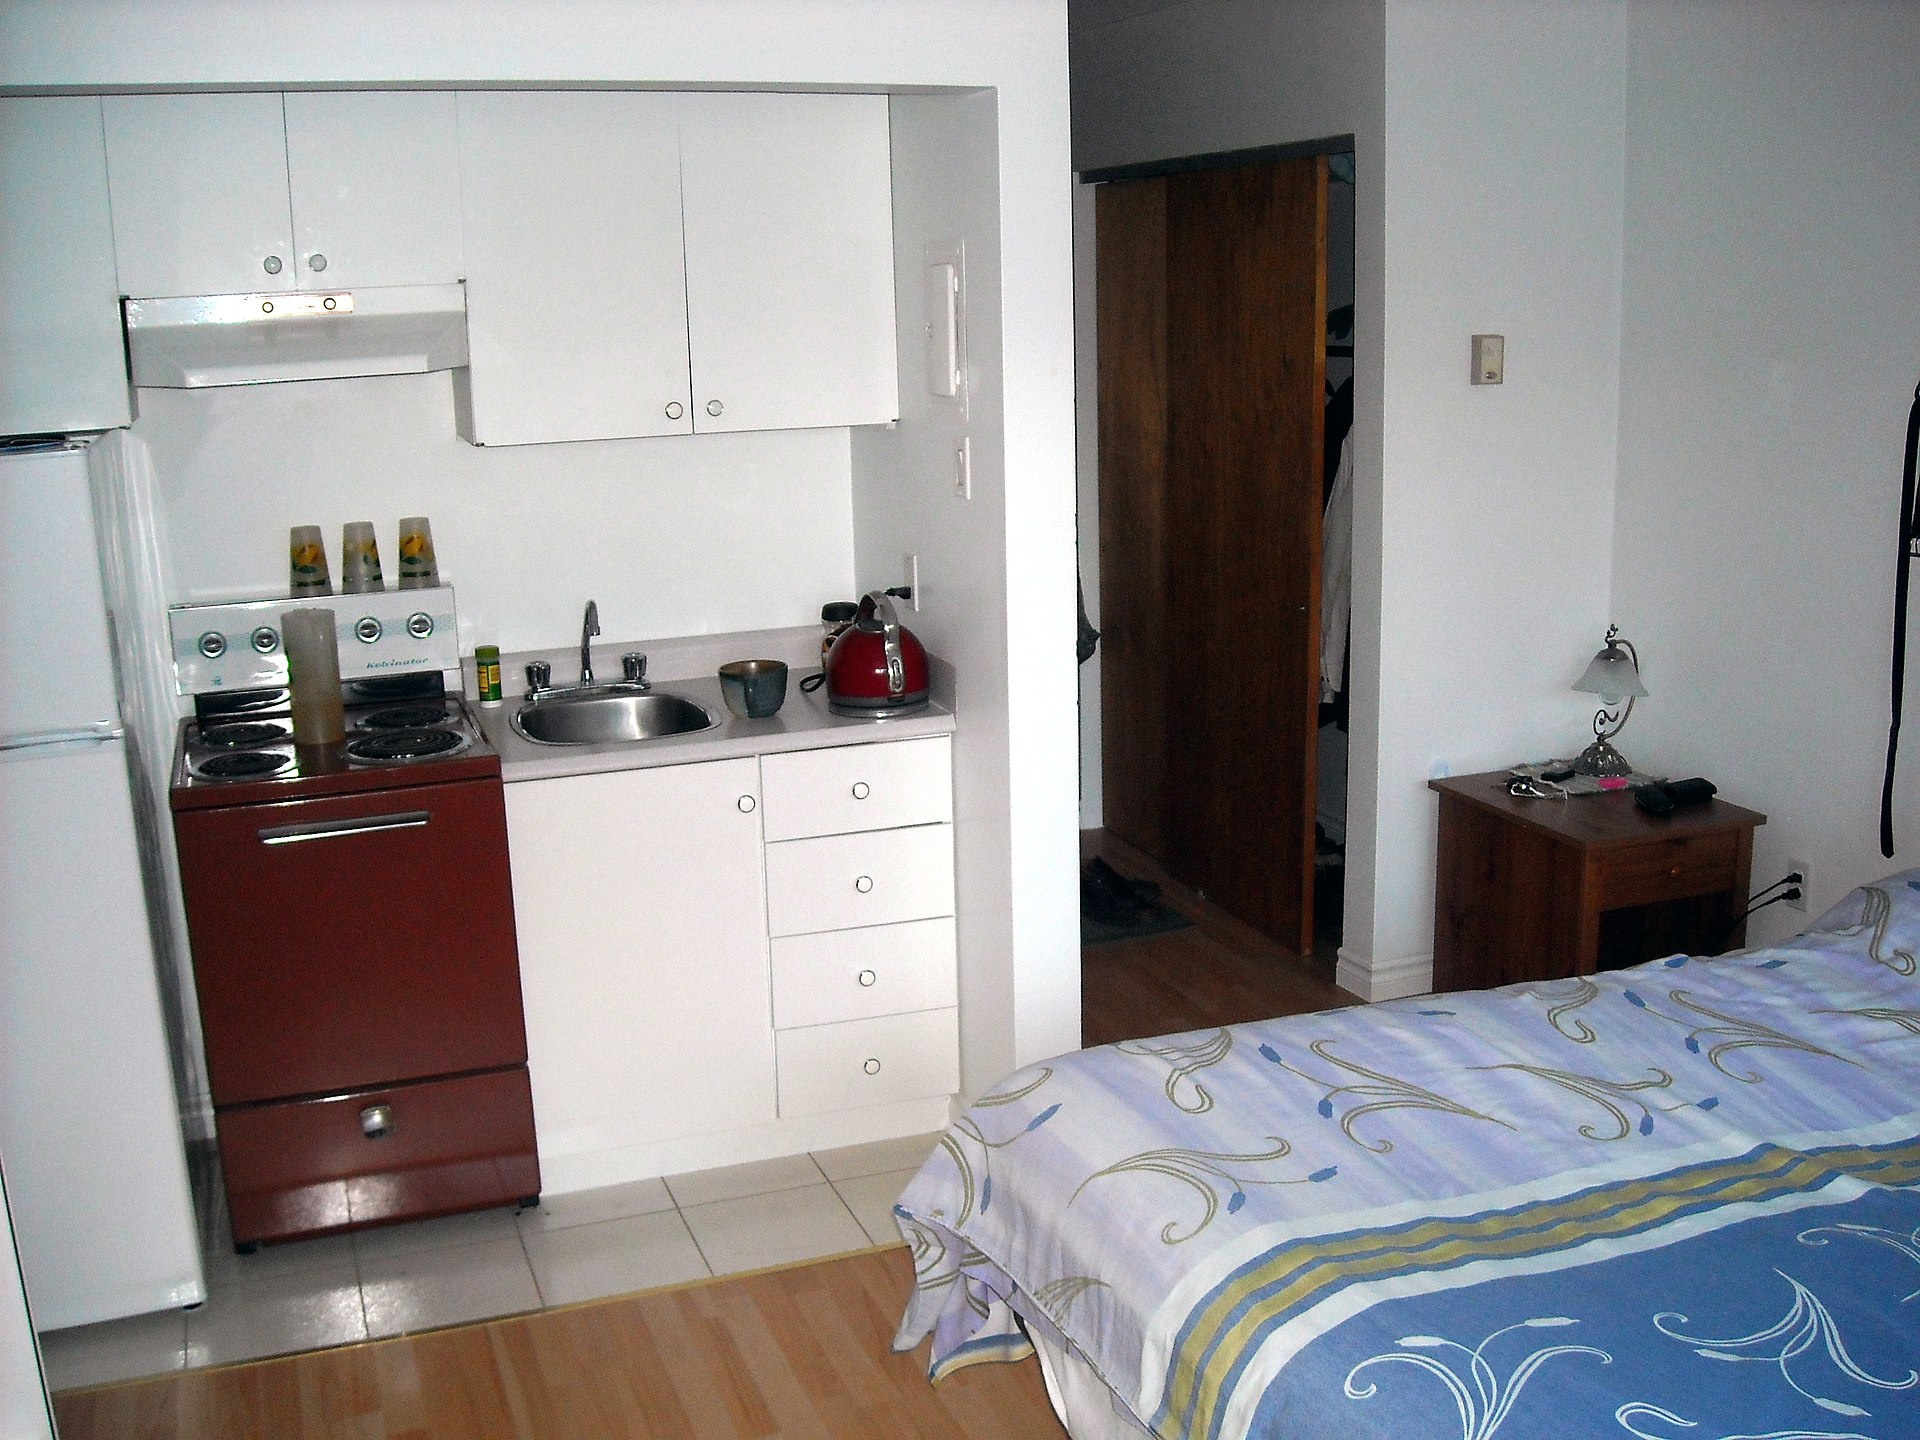 Efficiency Apartment Vs Studio Kitchenette Wikipedia